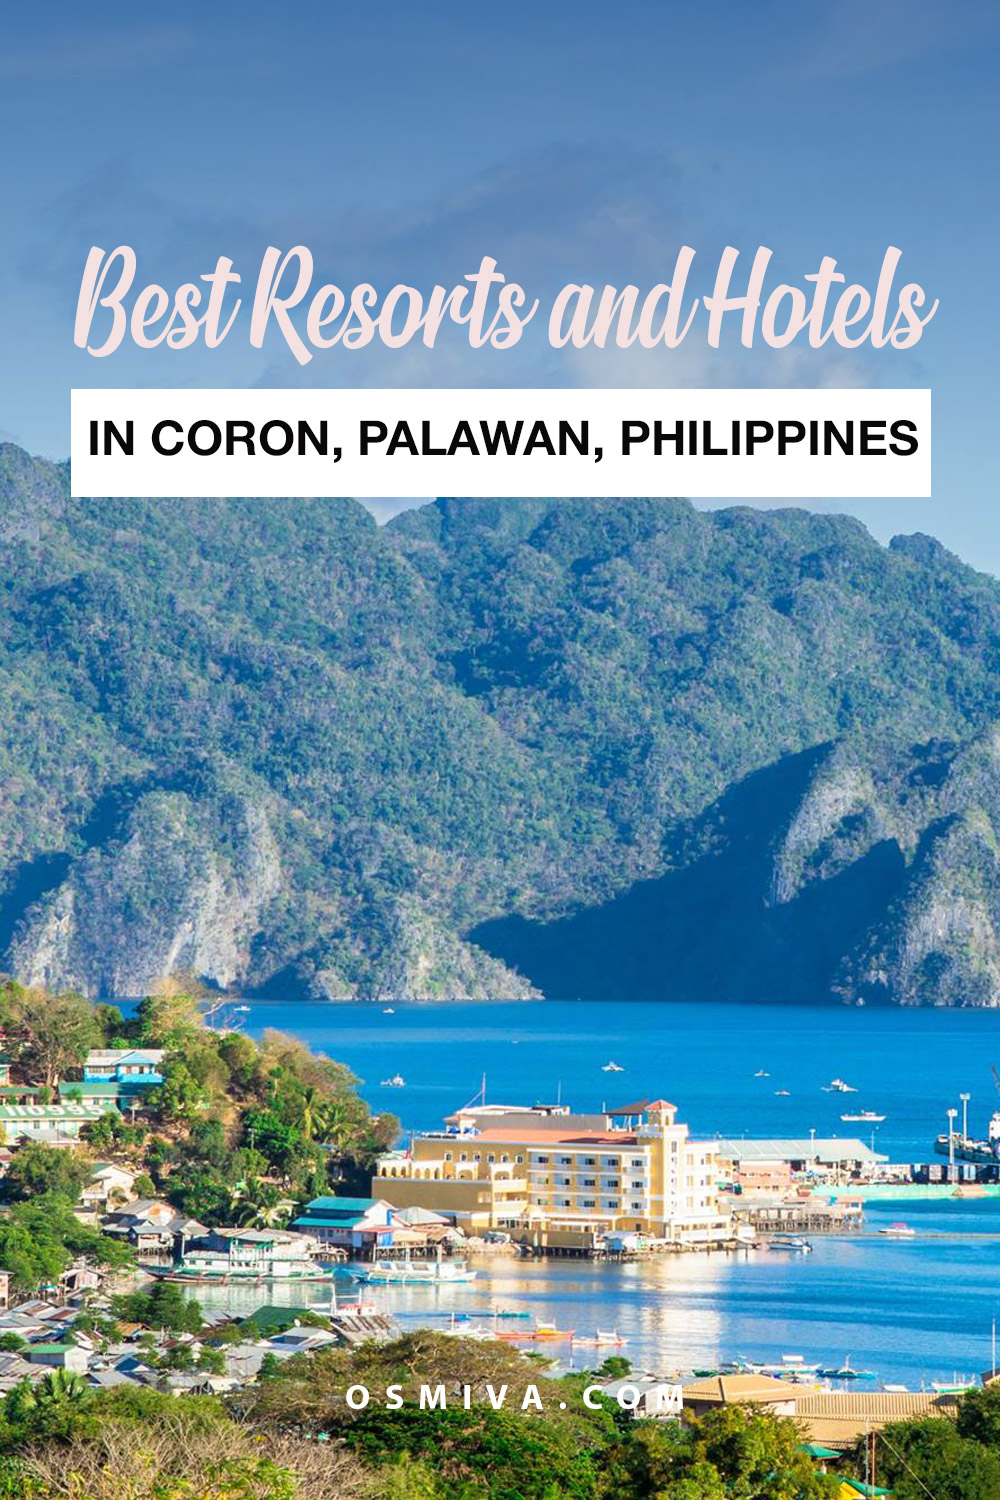 Best Hotels and Resorts in Coron, Palawan